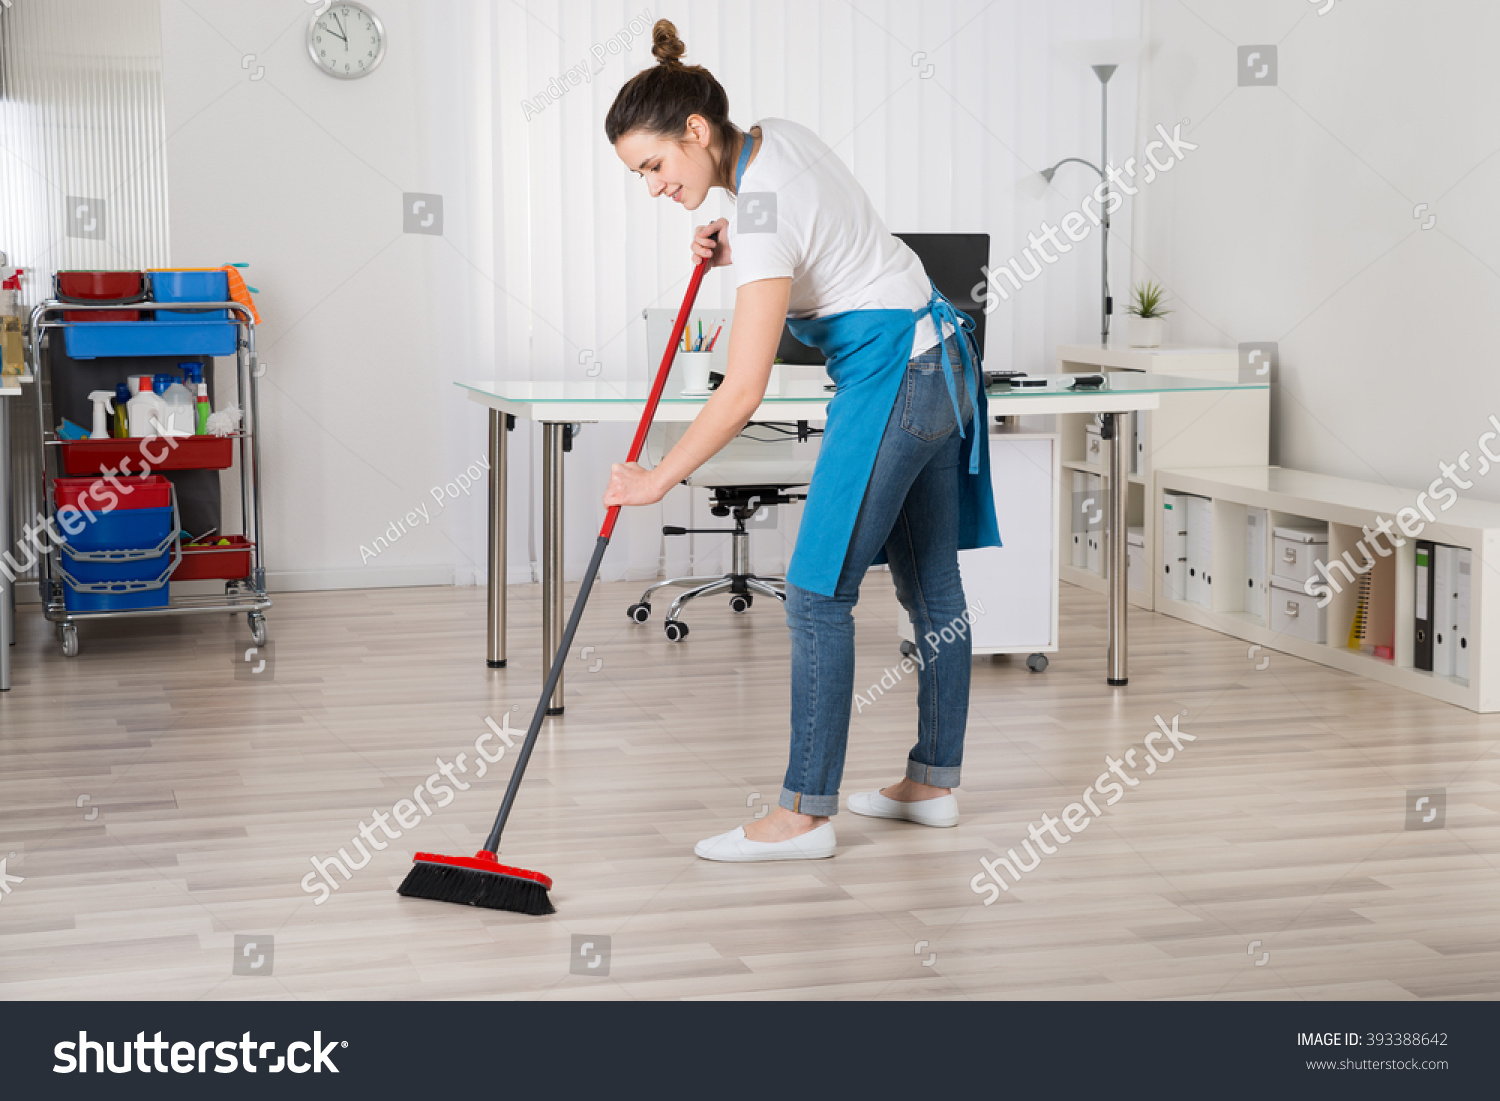 young female janitor sweeping floor broom stock photo edit now 393388642 https www shutterstock com image photo young female janitor sweeping floor broom 393388642